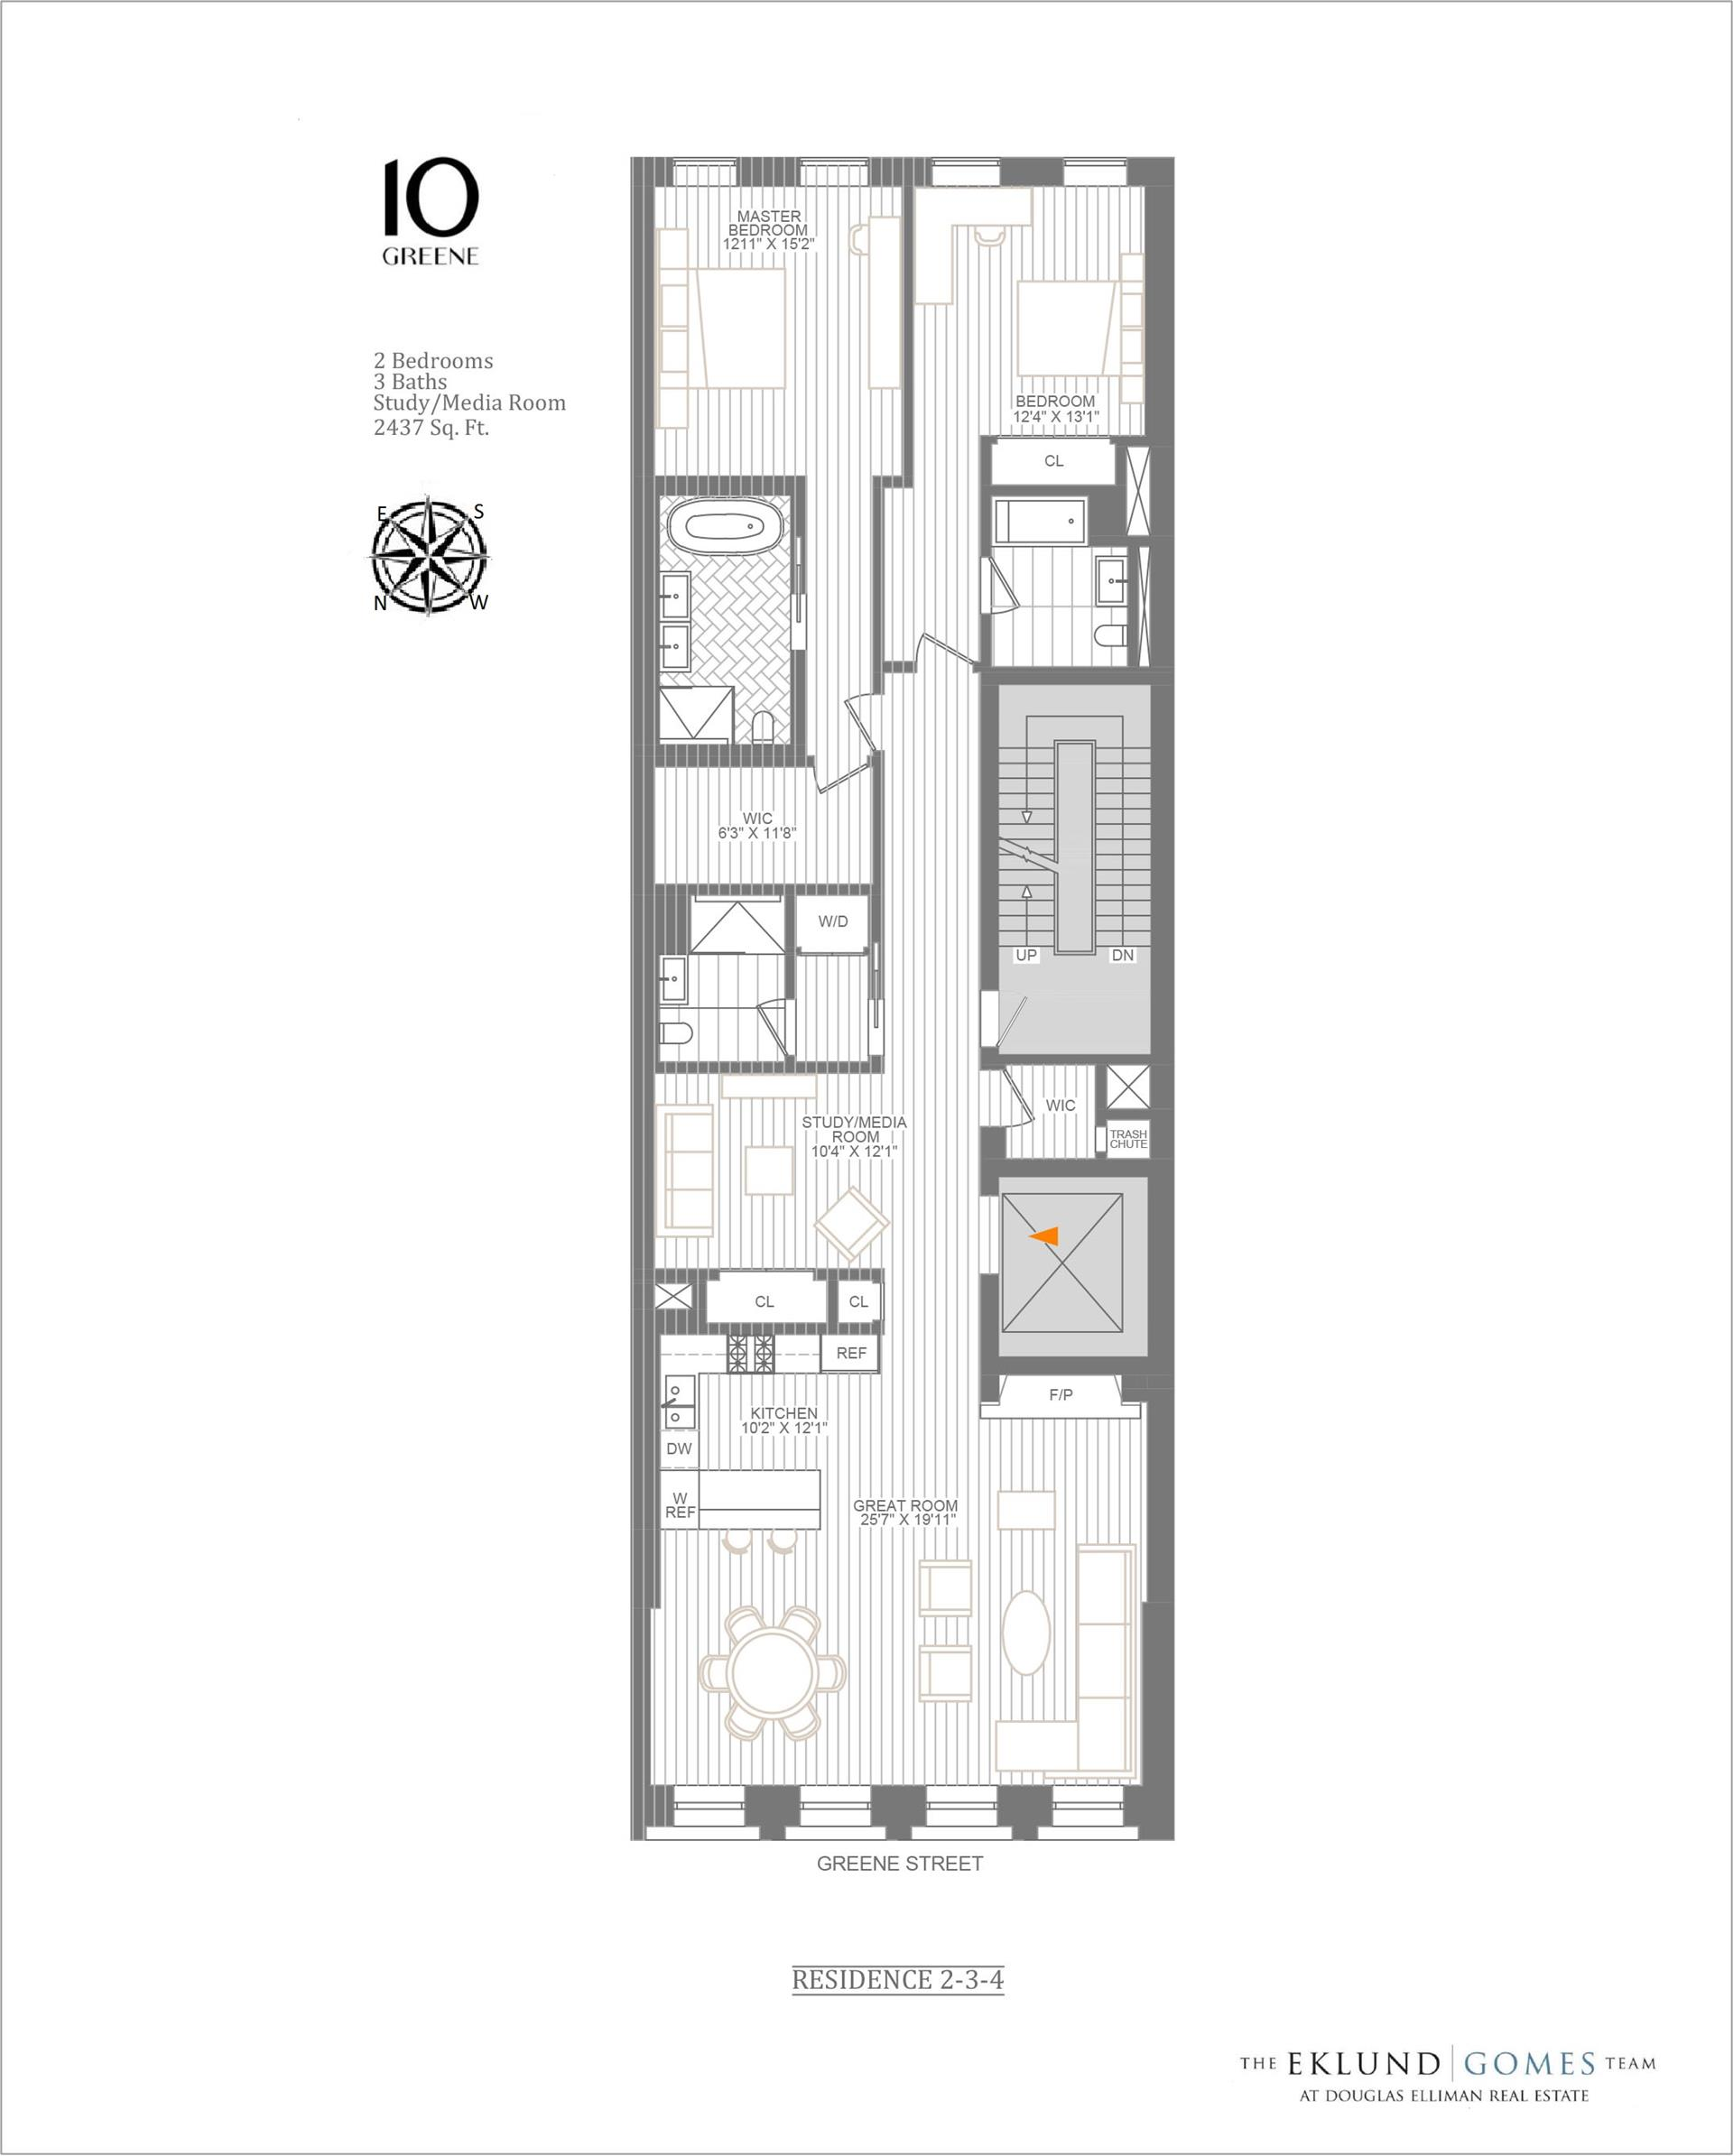 Floor plan of 10 Greene St, 4 - SoHo - Nolita, New York